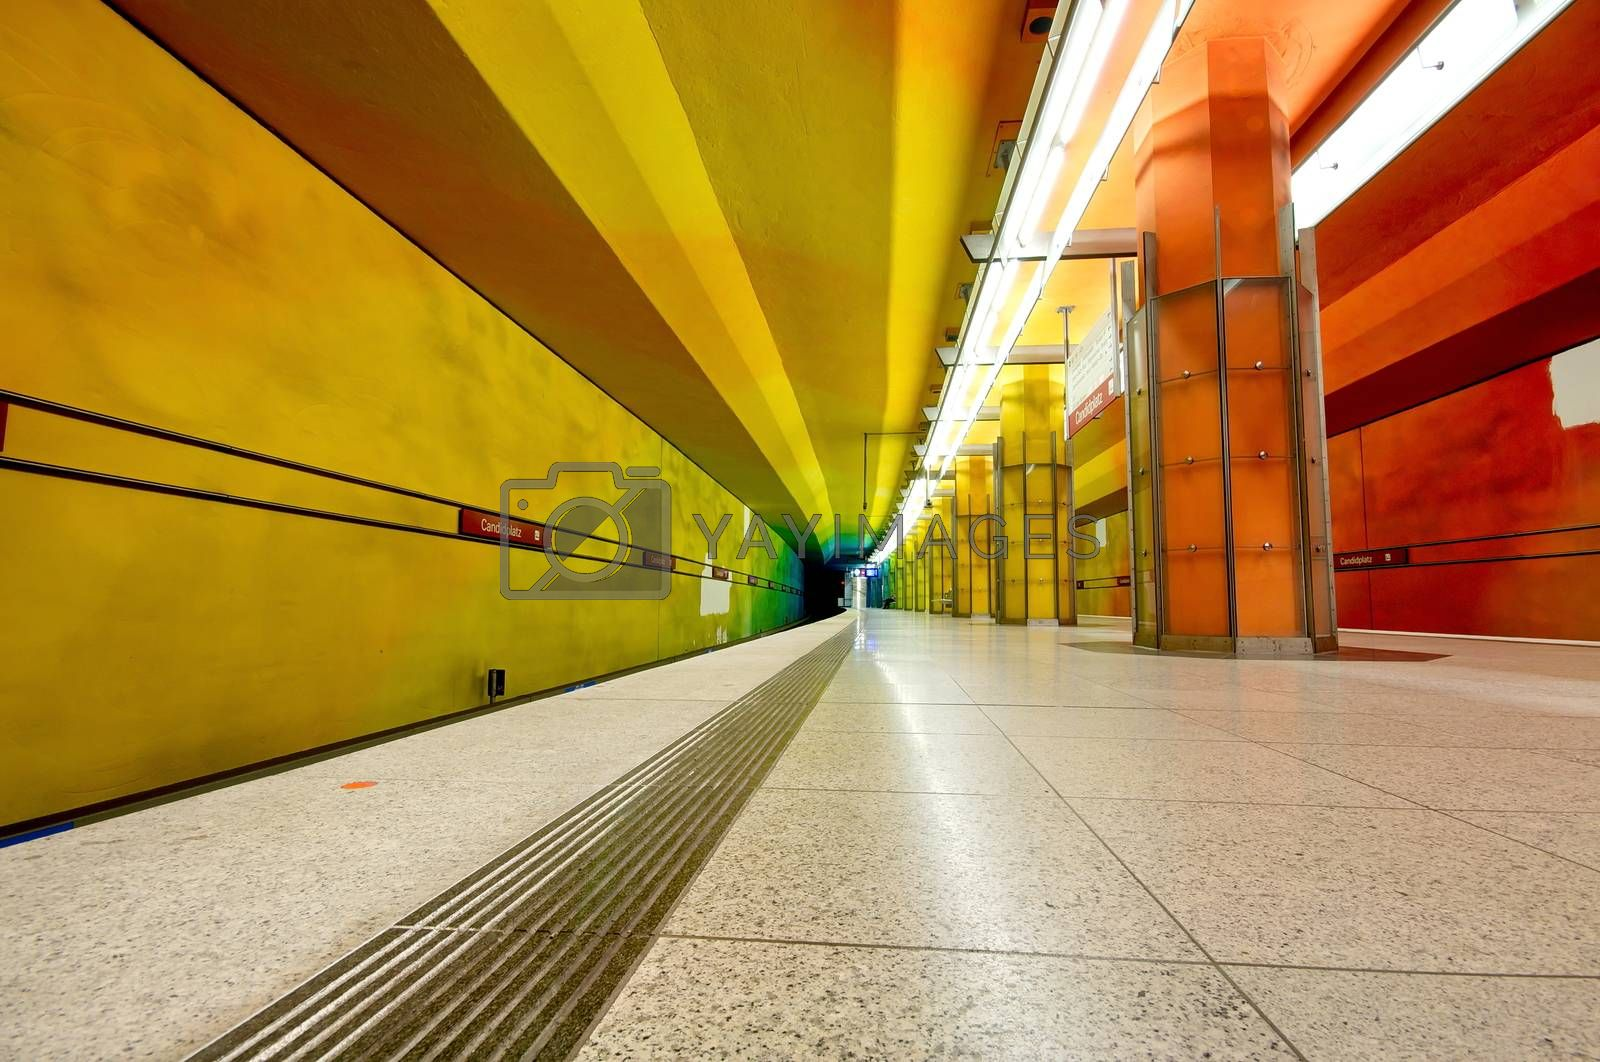 Royalty free image of Candidplatz subway station in Munich, Germany by anderm